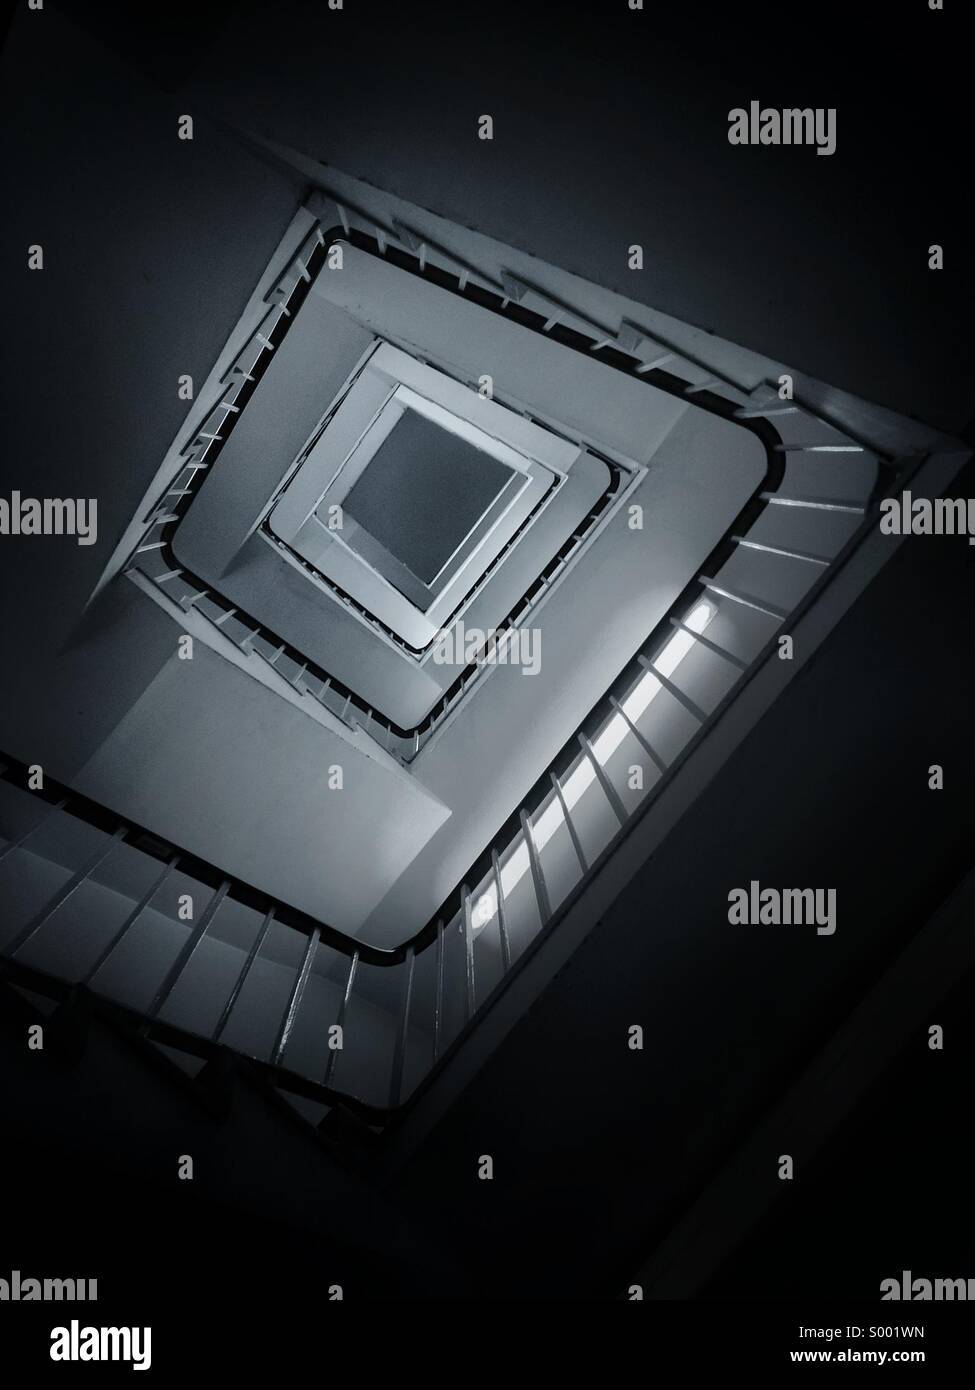 Abstract view of spiral stairs. - Stock Image